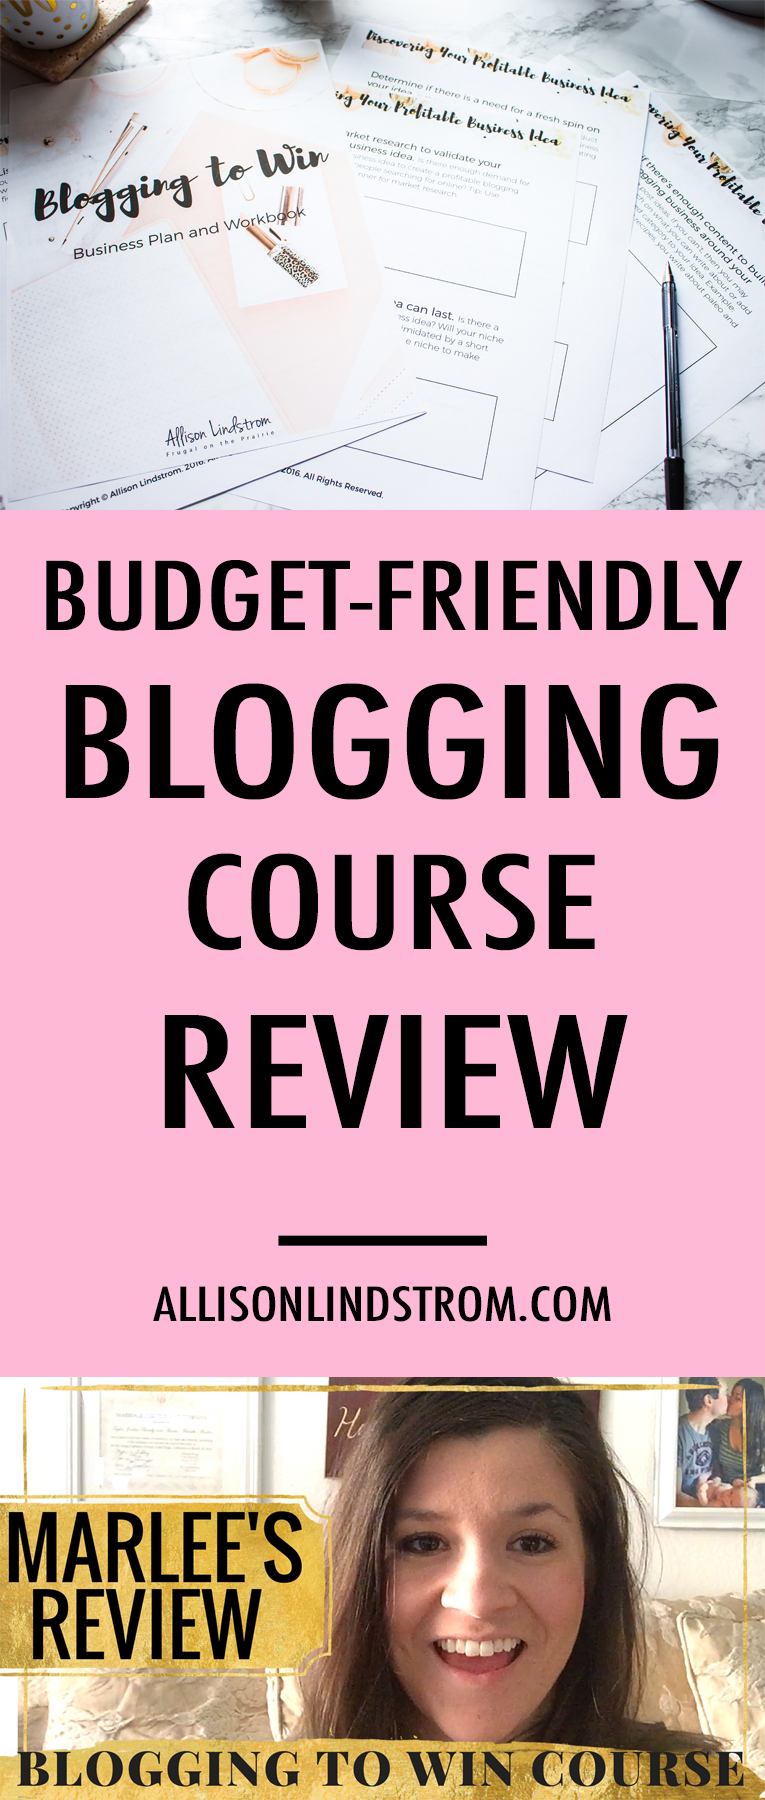 JOIN THE BLOGGING TO WIN COURSE HERE! http://allisonlindstrom.com/bloggingtowin || Blogging to Win is an online course about building a blogging business (not a hobby) with all of the modern strategies bloggers are using today. Marlee from I Just Make Sandwiches talks about how the course has helped her and what it's like to work with me as an instructor! Check out Marlee's site here: http://ijustmakesandwiches.com/ || BLOGGING TO WIN | BLOG COURSE REVIEW | MARLEE